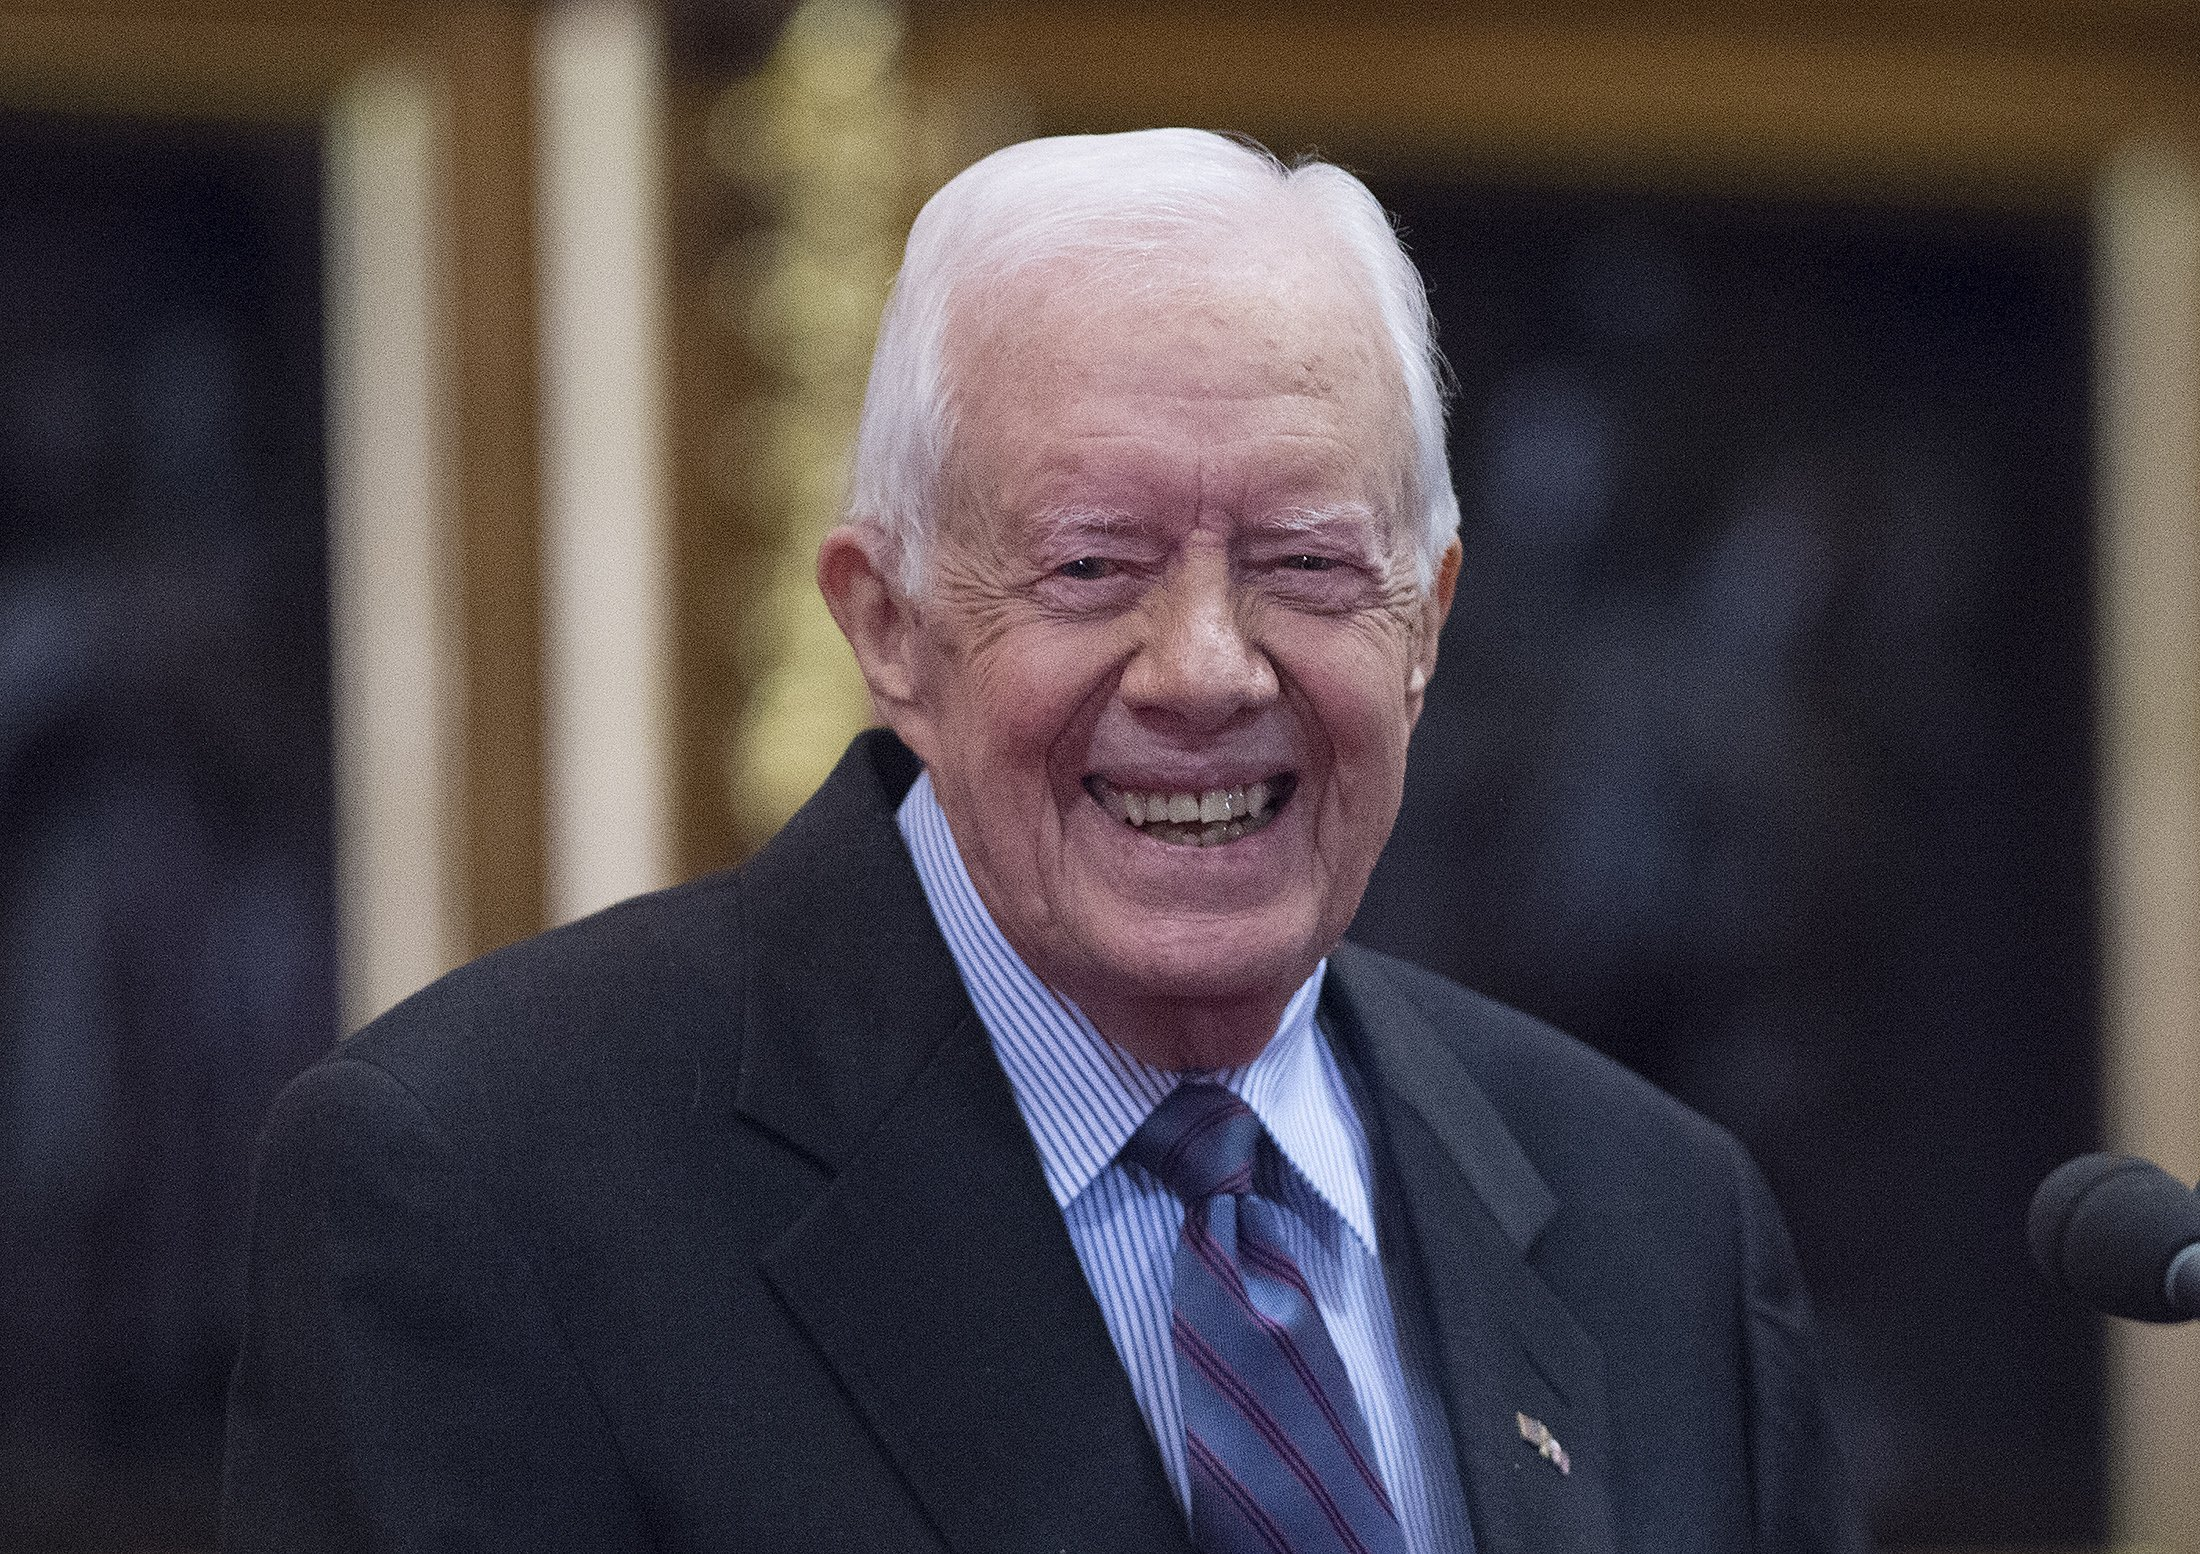 Former U.S. President Jimmy Carter receives delivers a lecture on the eradication of the Guinea worm, at the House of Lords on February 3, 2016, in London. | Source: Getty Images.